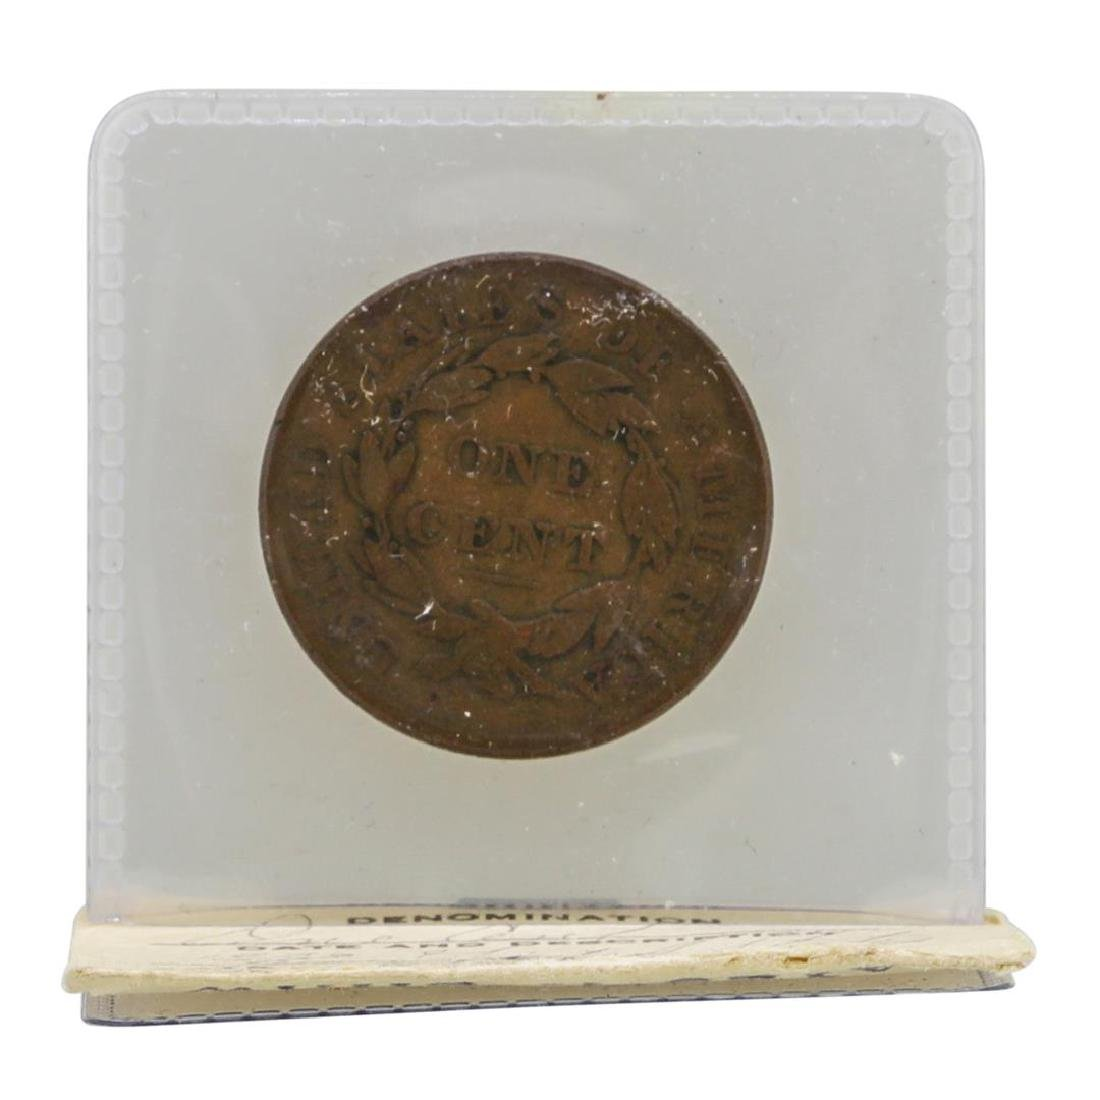 1833 Large One Cent Coin in Old Flip - 2